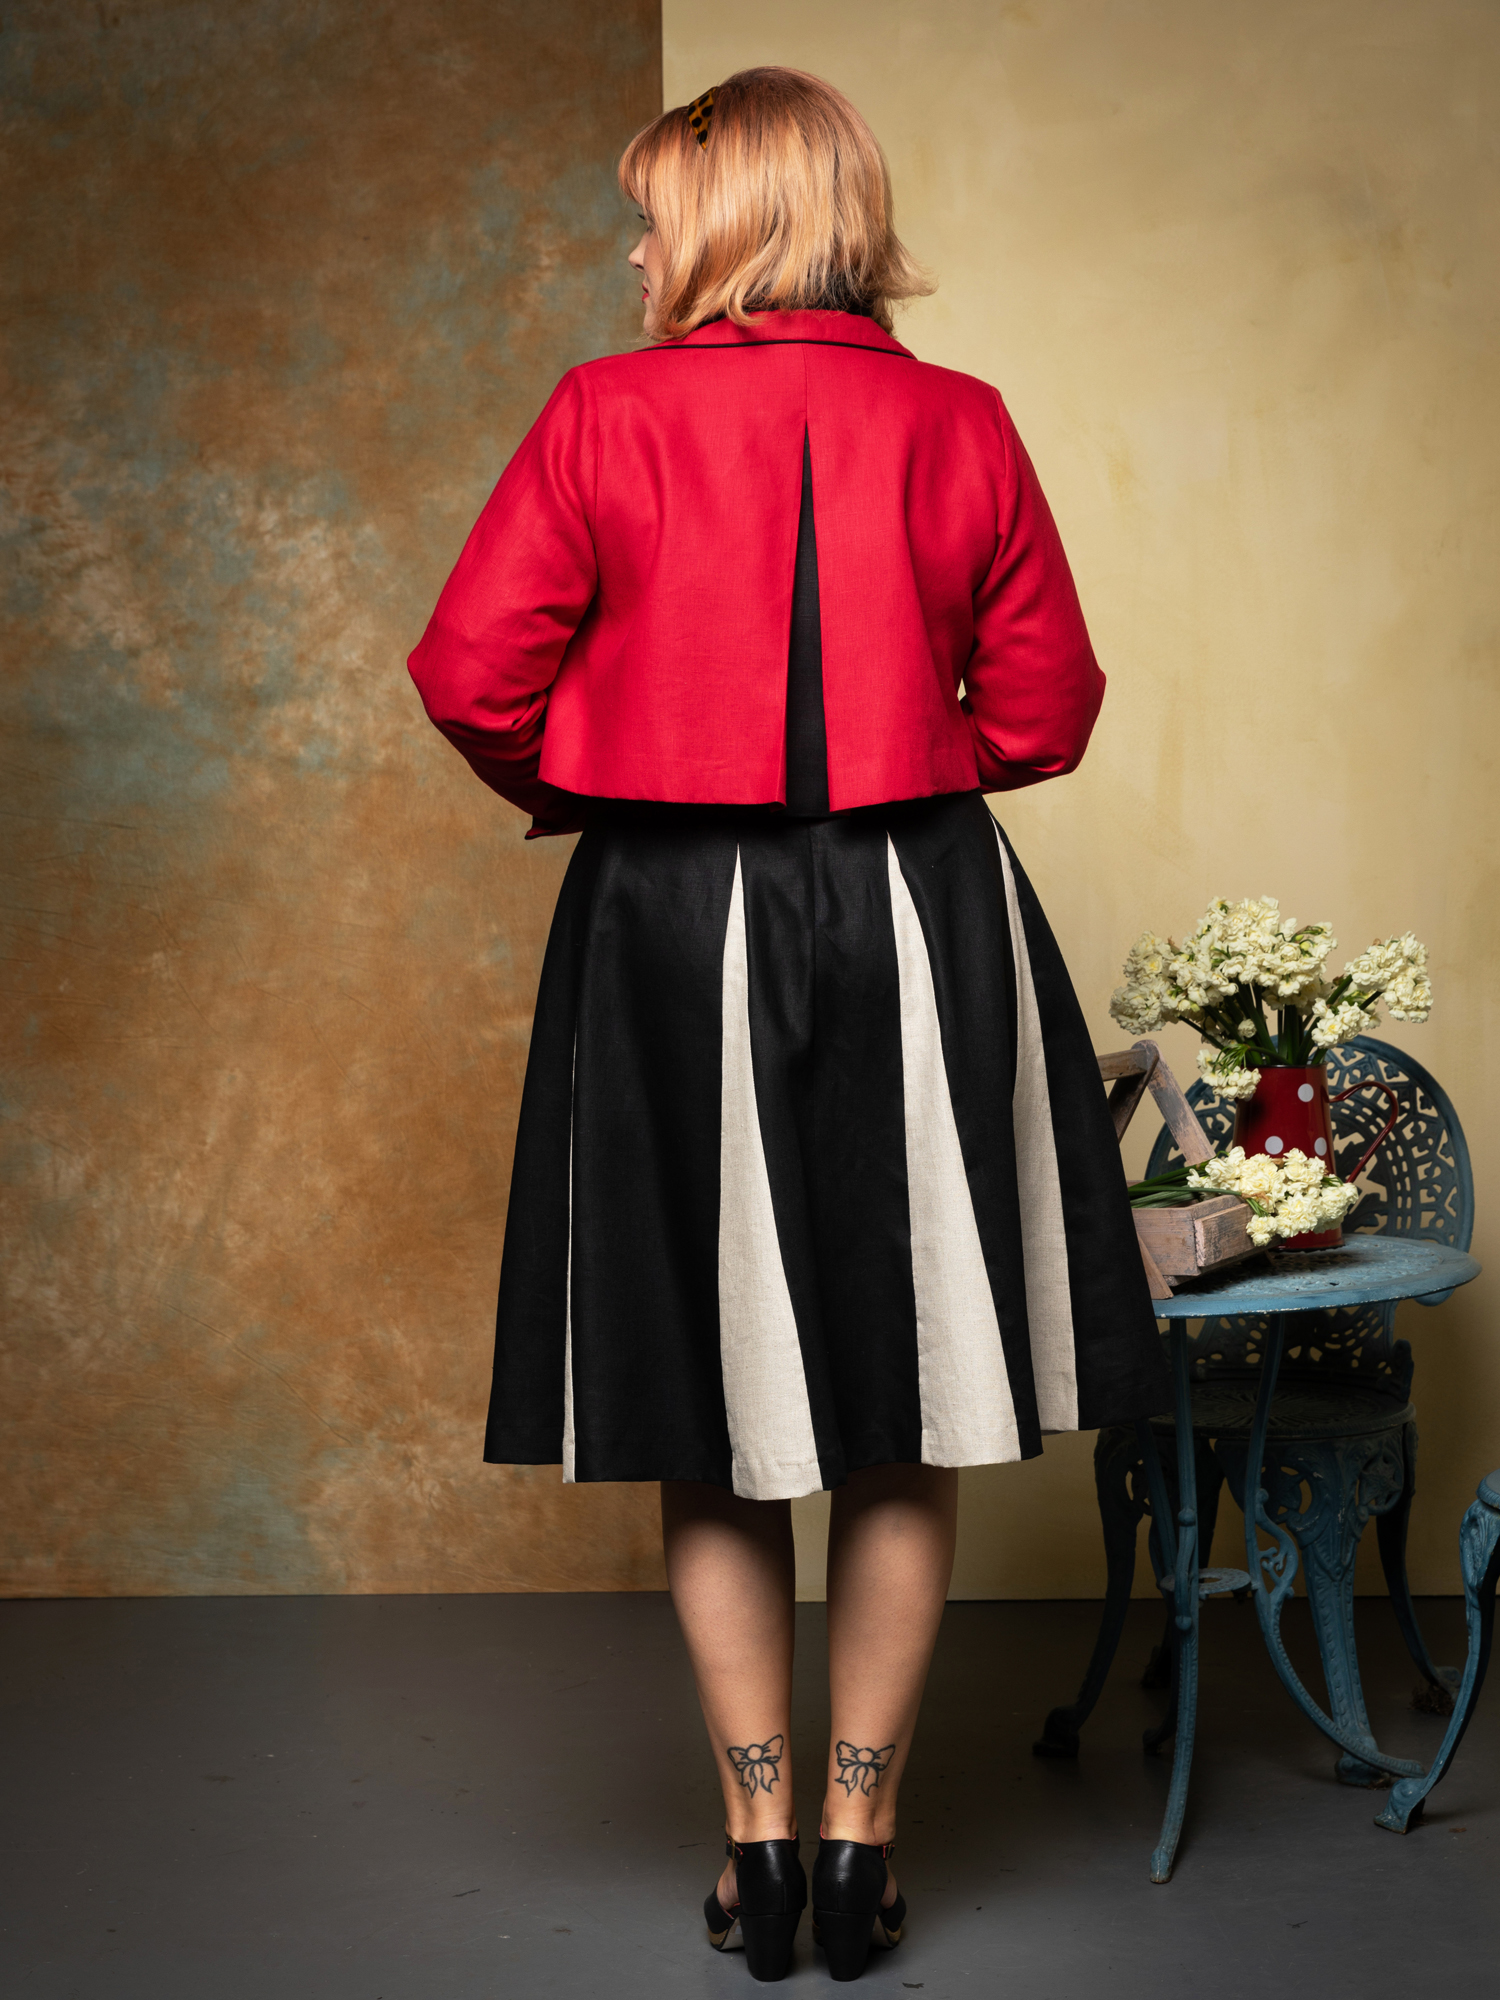 Sorrento Jkt.red. & Roman Holiday Skirt.blk.naturale. web. bk